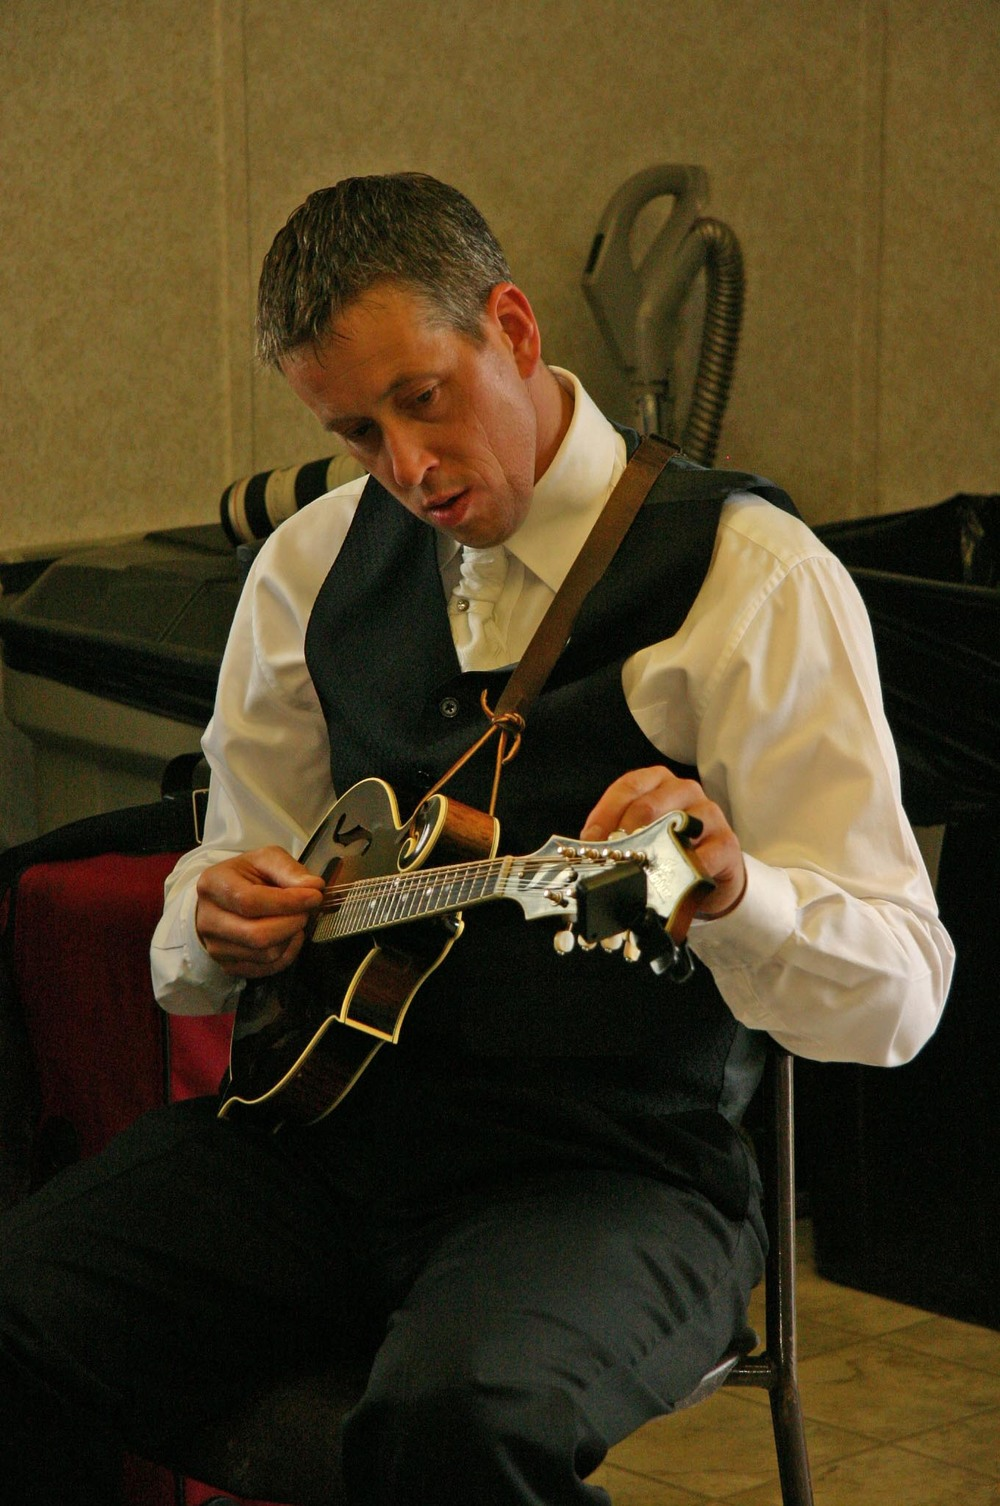 2010 - Gary Dalrymple of the Spinney Brothers backstage